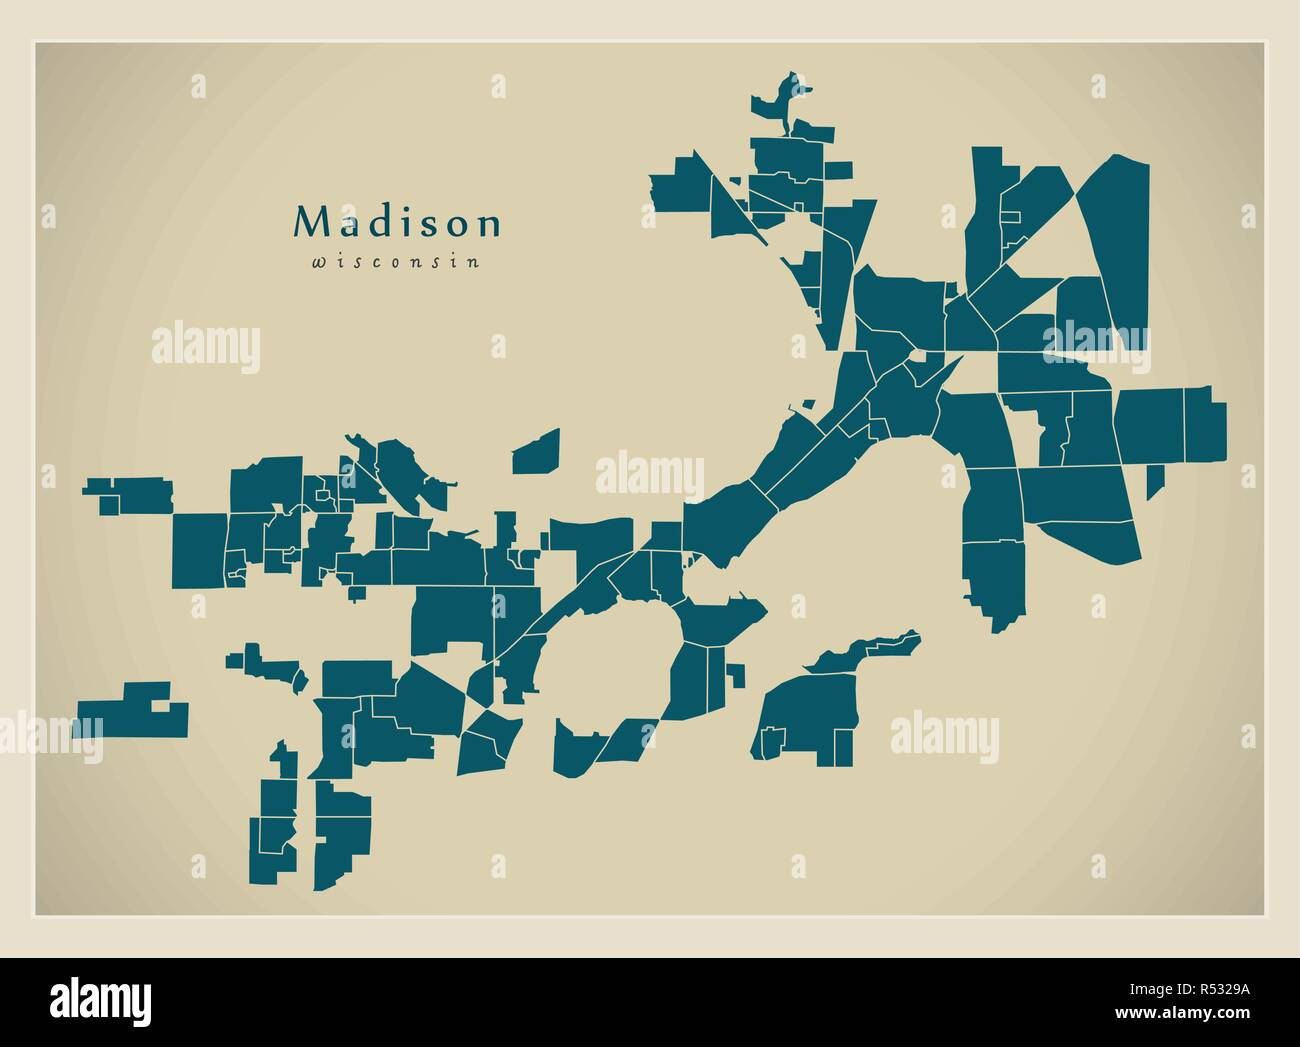 Modern City Map - Madison Wisconsin city of the USA with ... on madison wisconsin us map, city of deer park map, city of delavan map, city of college park map, city of monona map, city of brook park map, city of lexington map, city of new york city map, city of ely nv map, city of alabama map, city of brooklyn map, city of rice lake map, city wi map, city of benson map, madison wi map, city of union city map, city of savage map, city of plant city map, city of wisconsin map, city of oklahoma map,